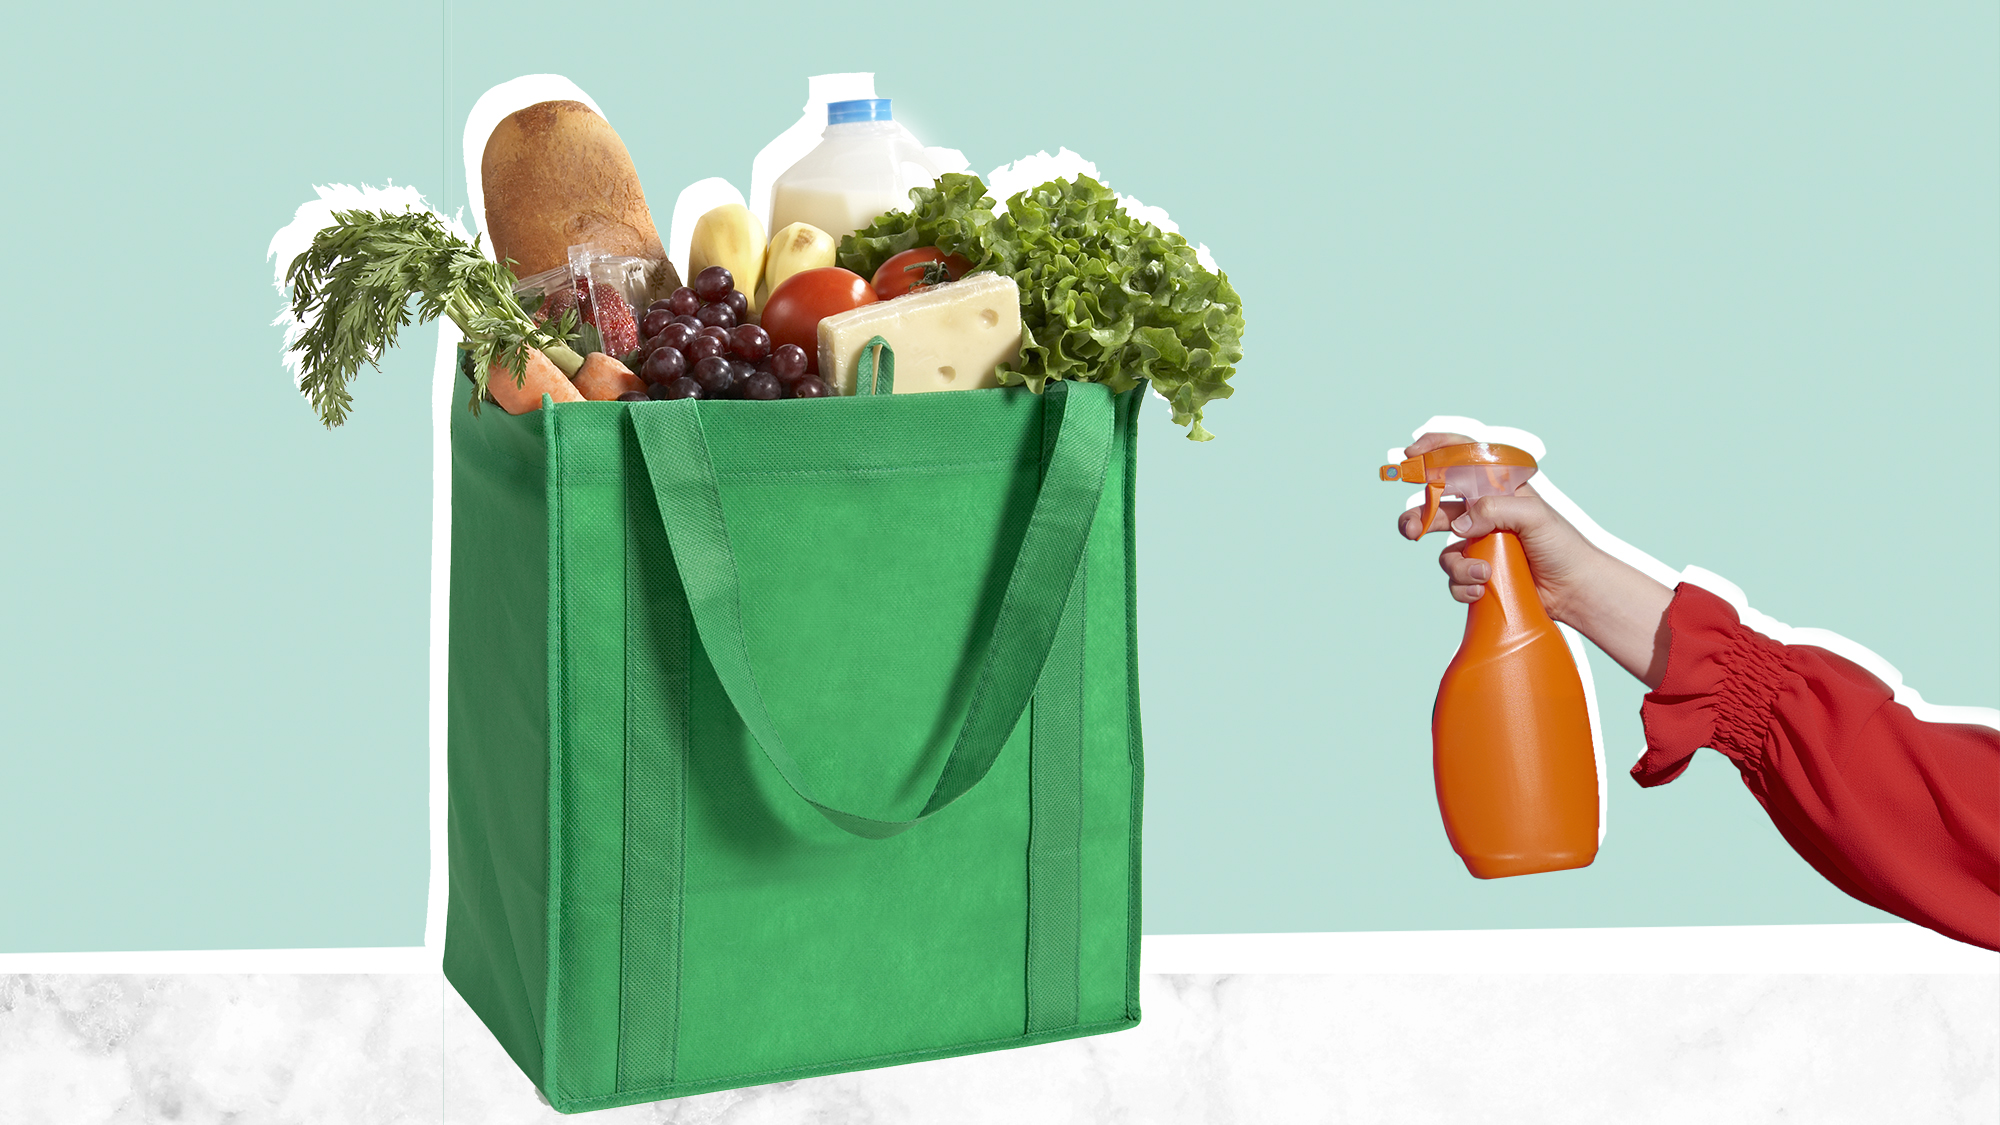 How to effectively disinfect groceries during Covid-19?